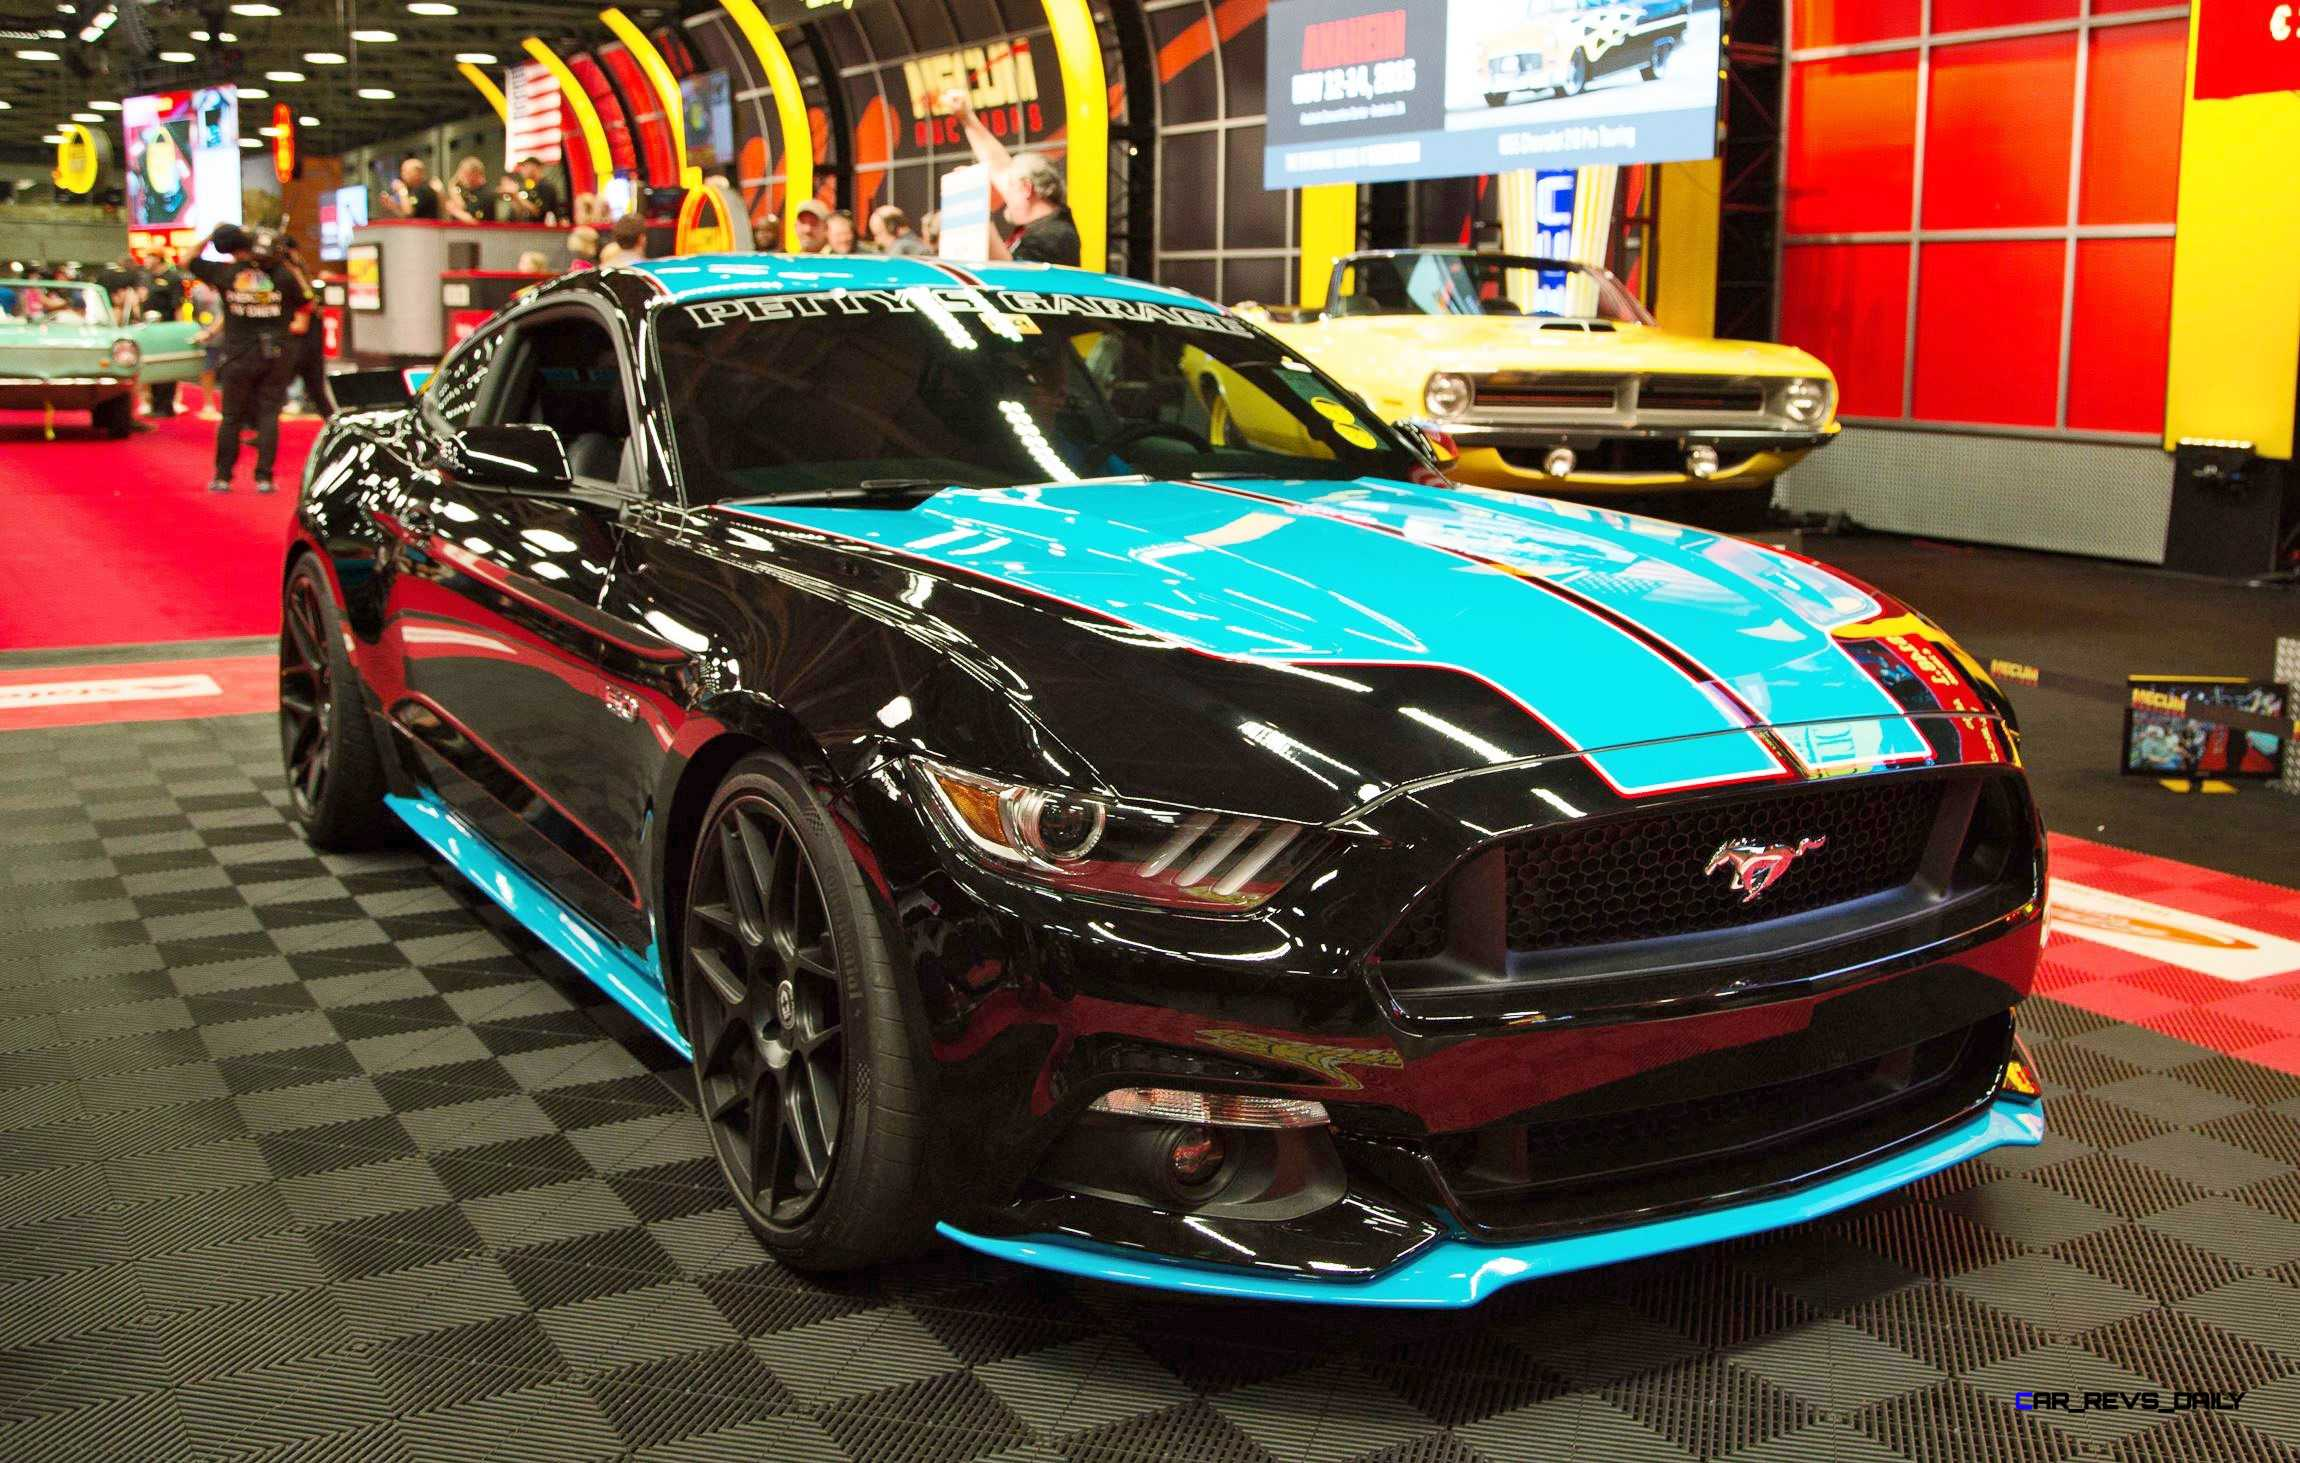 2015 ford mustang gt pettys garage leads mecum dallas 2015 for Garage gt auto